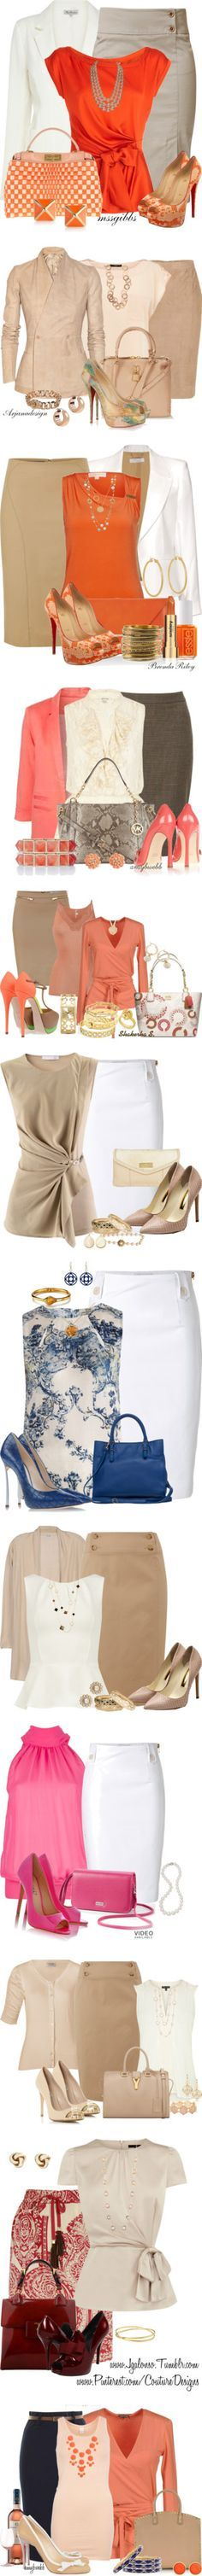 """Outfit ideas for a spring, work appropriate look """"Office… Work Fashion, Spring Fashion, Autumn Fashion, Fashion Ideas, Ootd Spring, Office Fashion, Skirt Fashion, Spring Summer, Fashion Trends"""